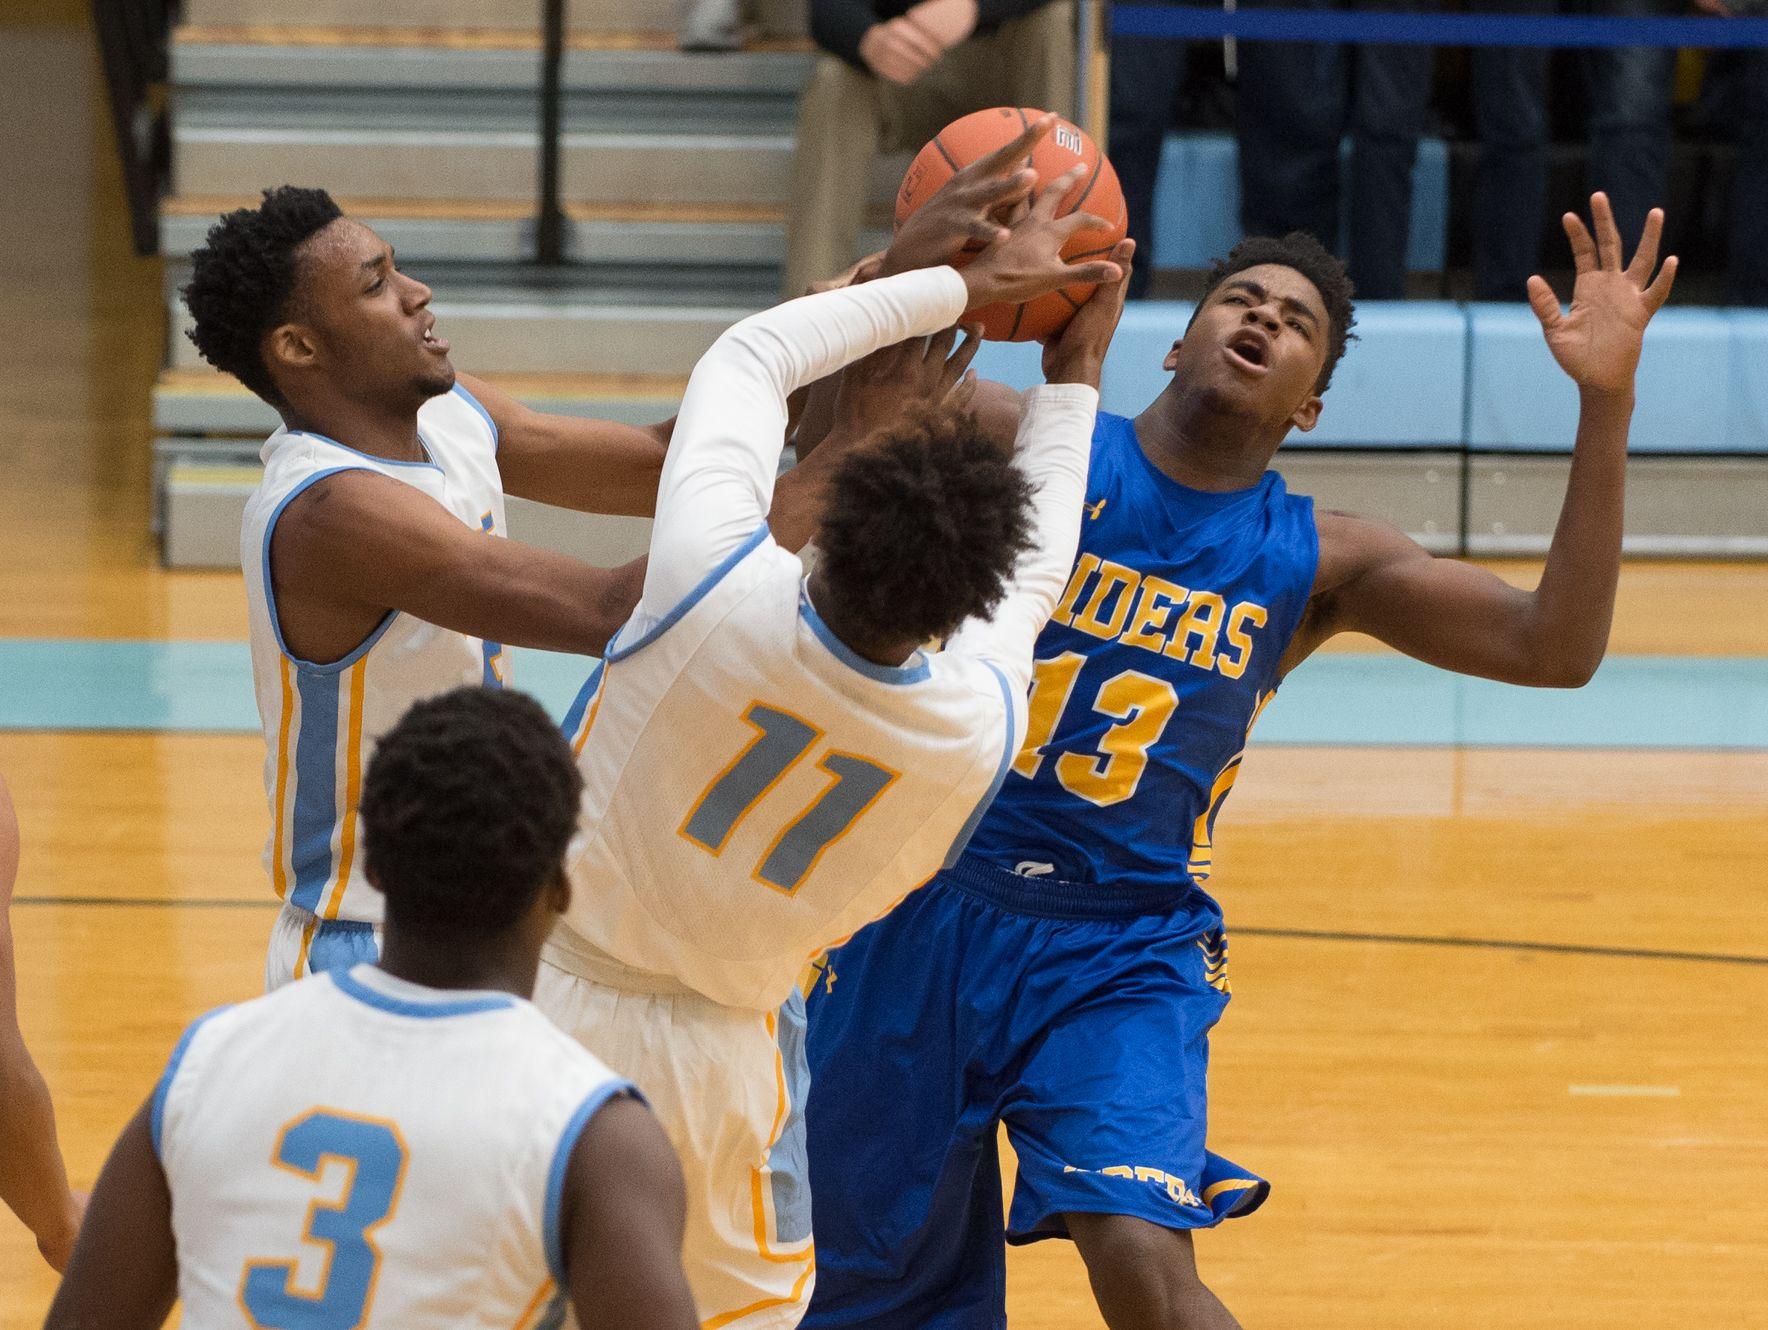 Cape Henlopen's Randy Rickards (5), left, and teammate Sh'Kai Chandler (11) battle for a loose ball against Caesar Rodney's Kairi Buie (13) during their game at Cape Henlopen High School.